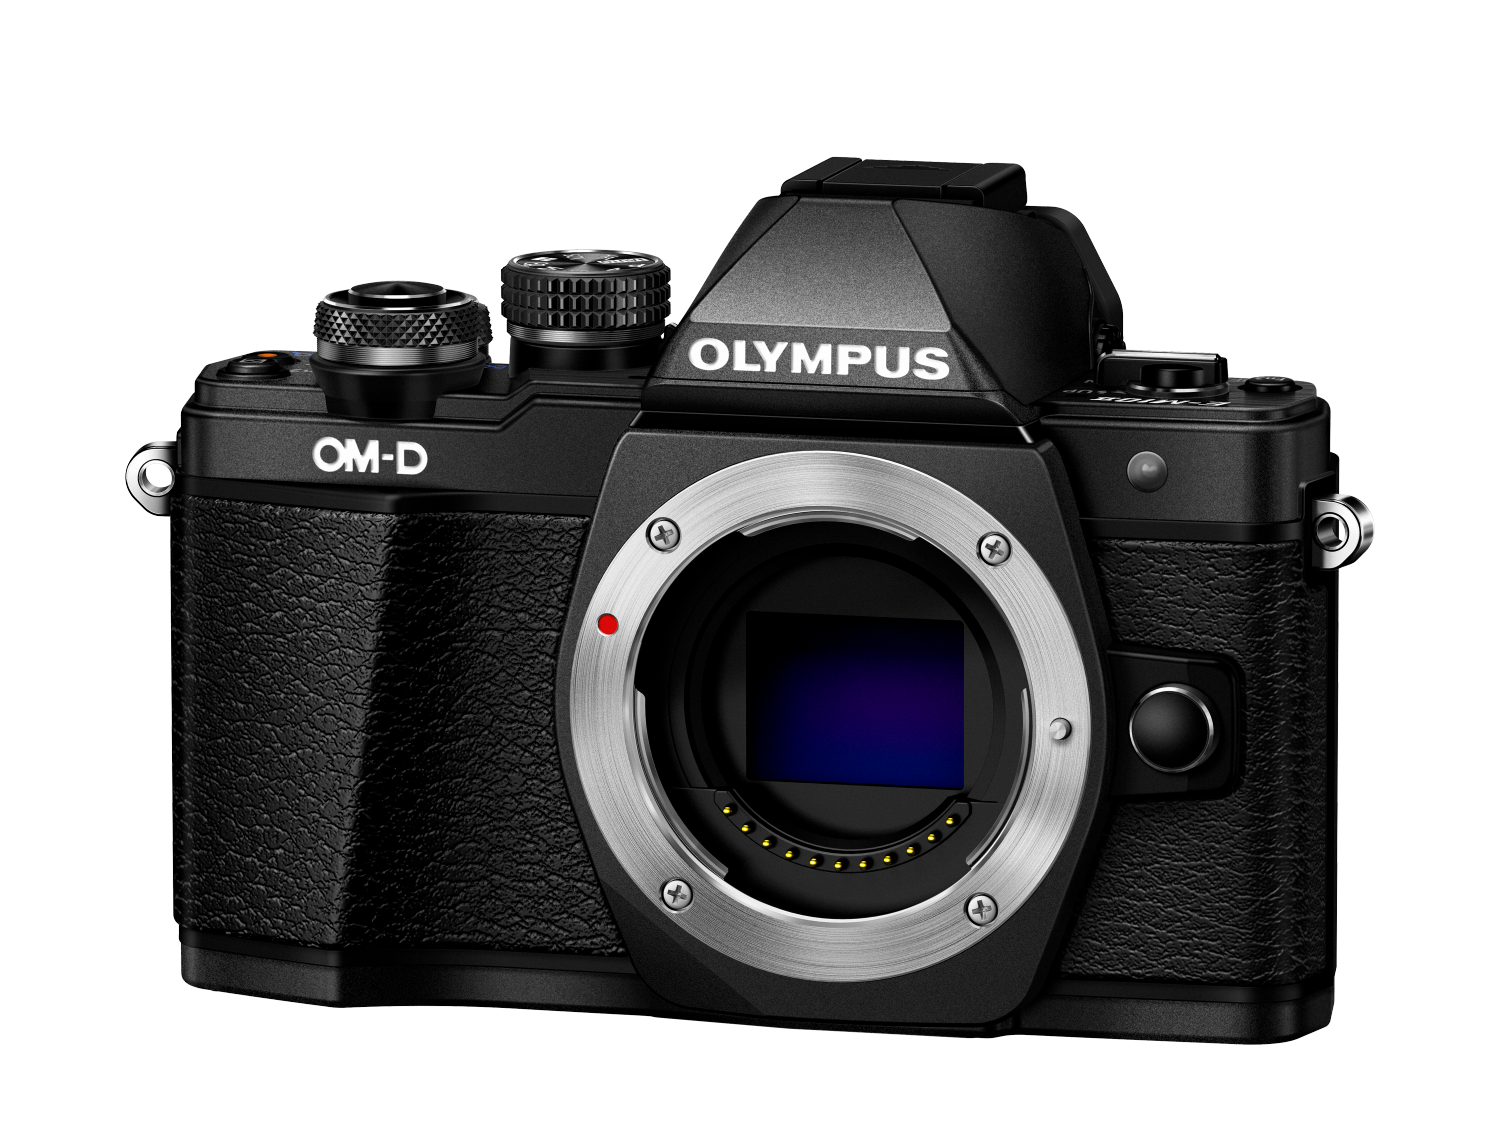 Фотоаппарат Olympus OM-D E-M10 Mark II Body черный (V207050BE000) фото